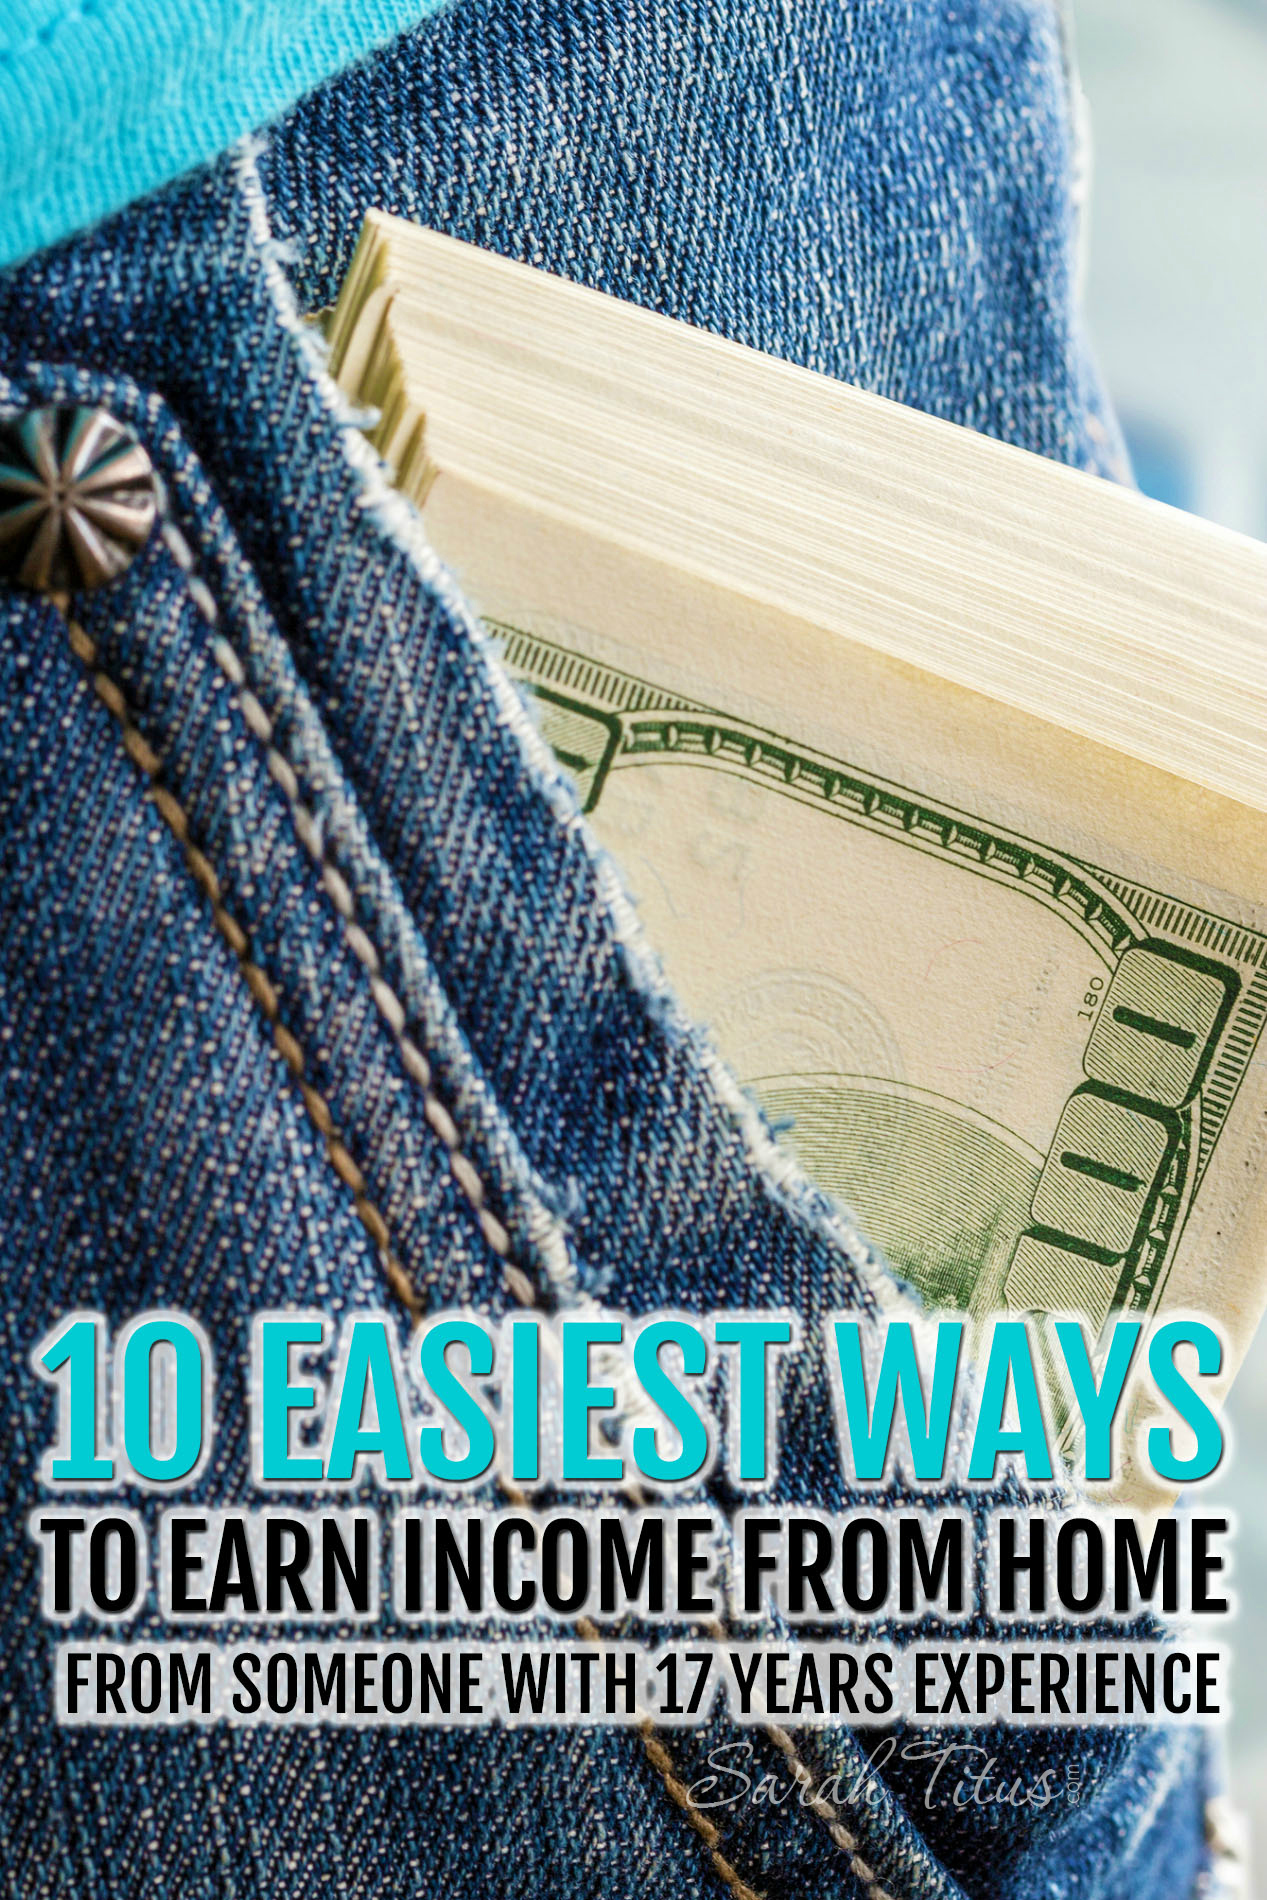 As a single SAHM, I've had the privilege of getting to know the myriad of ways in which to earn extra income from home. Here are my top 10 favorites.